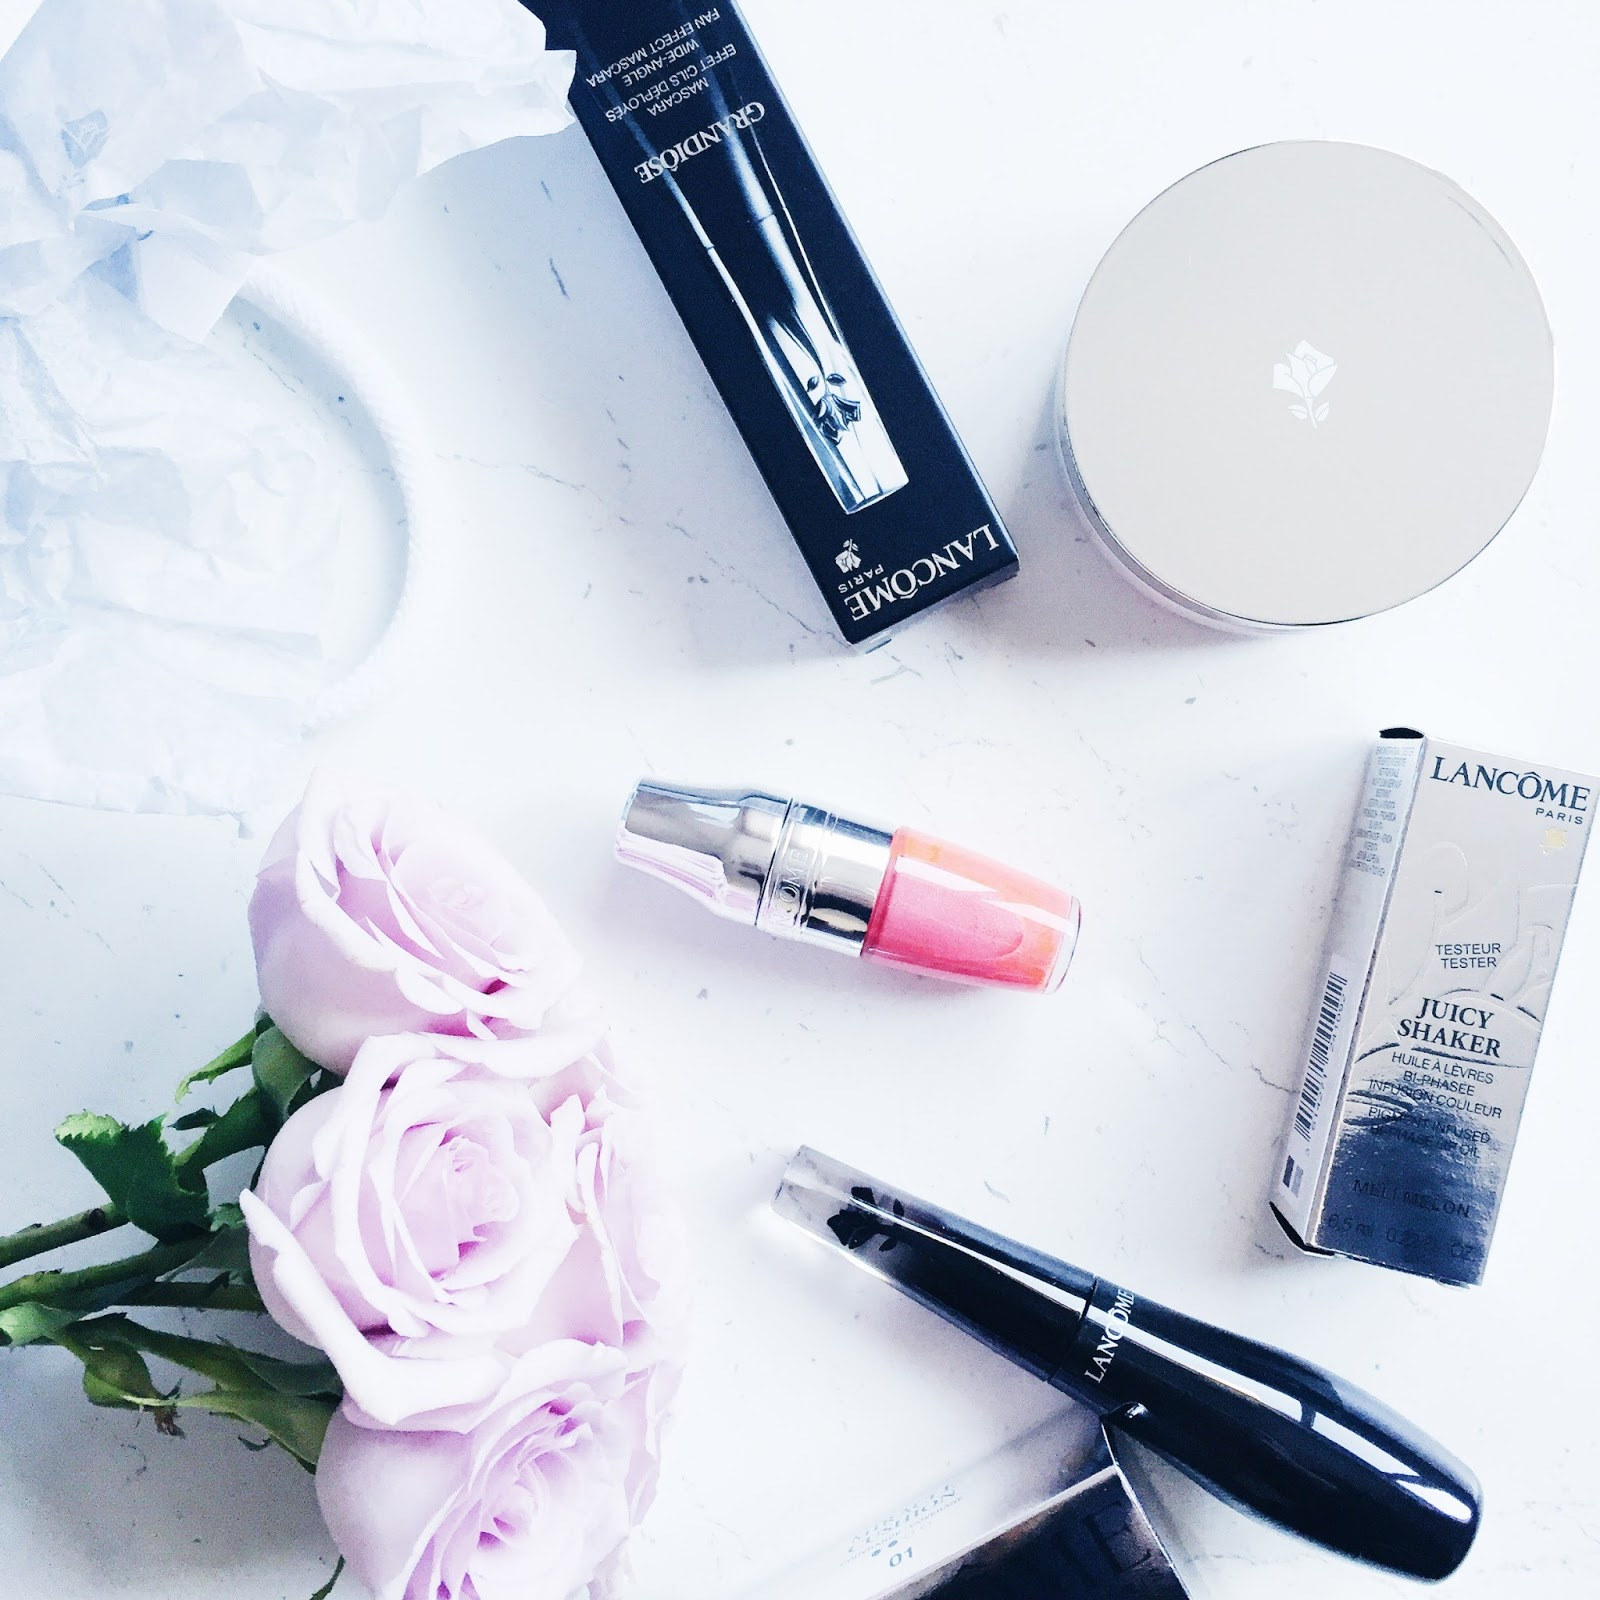 Lancome dreams and news